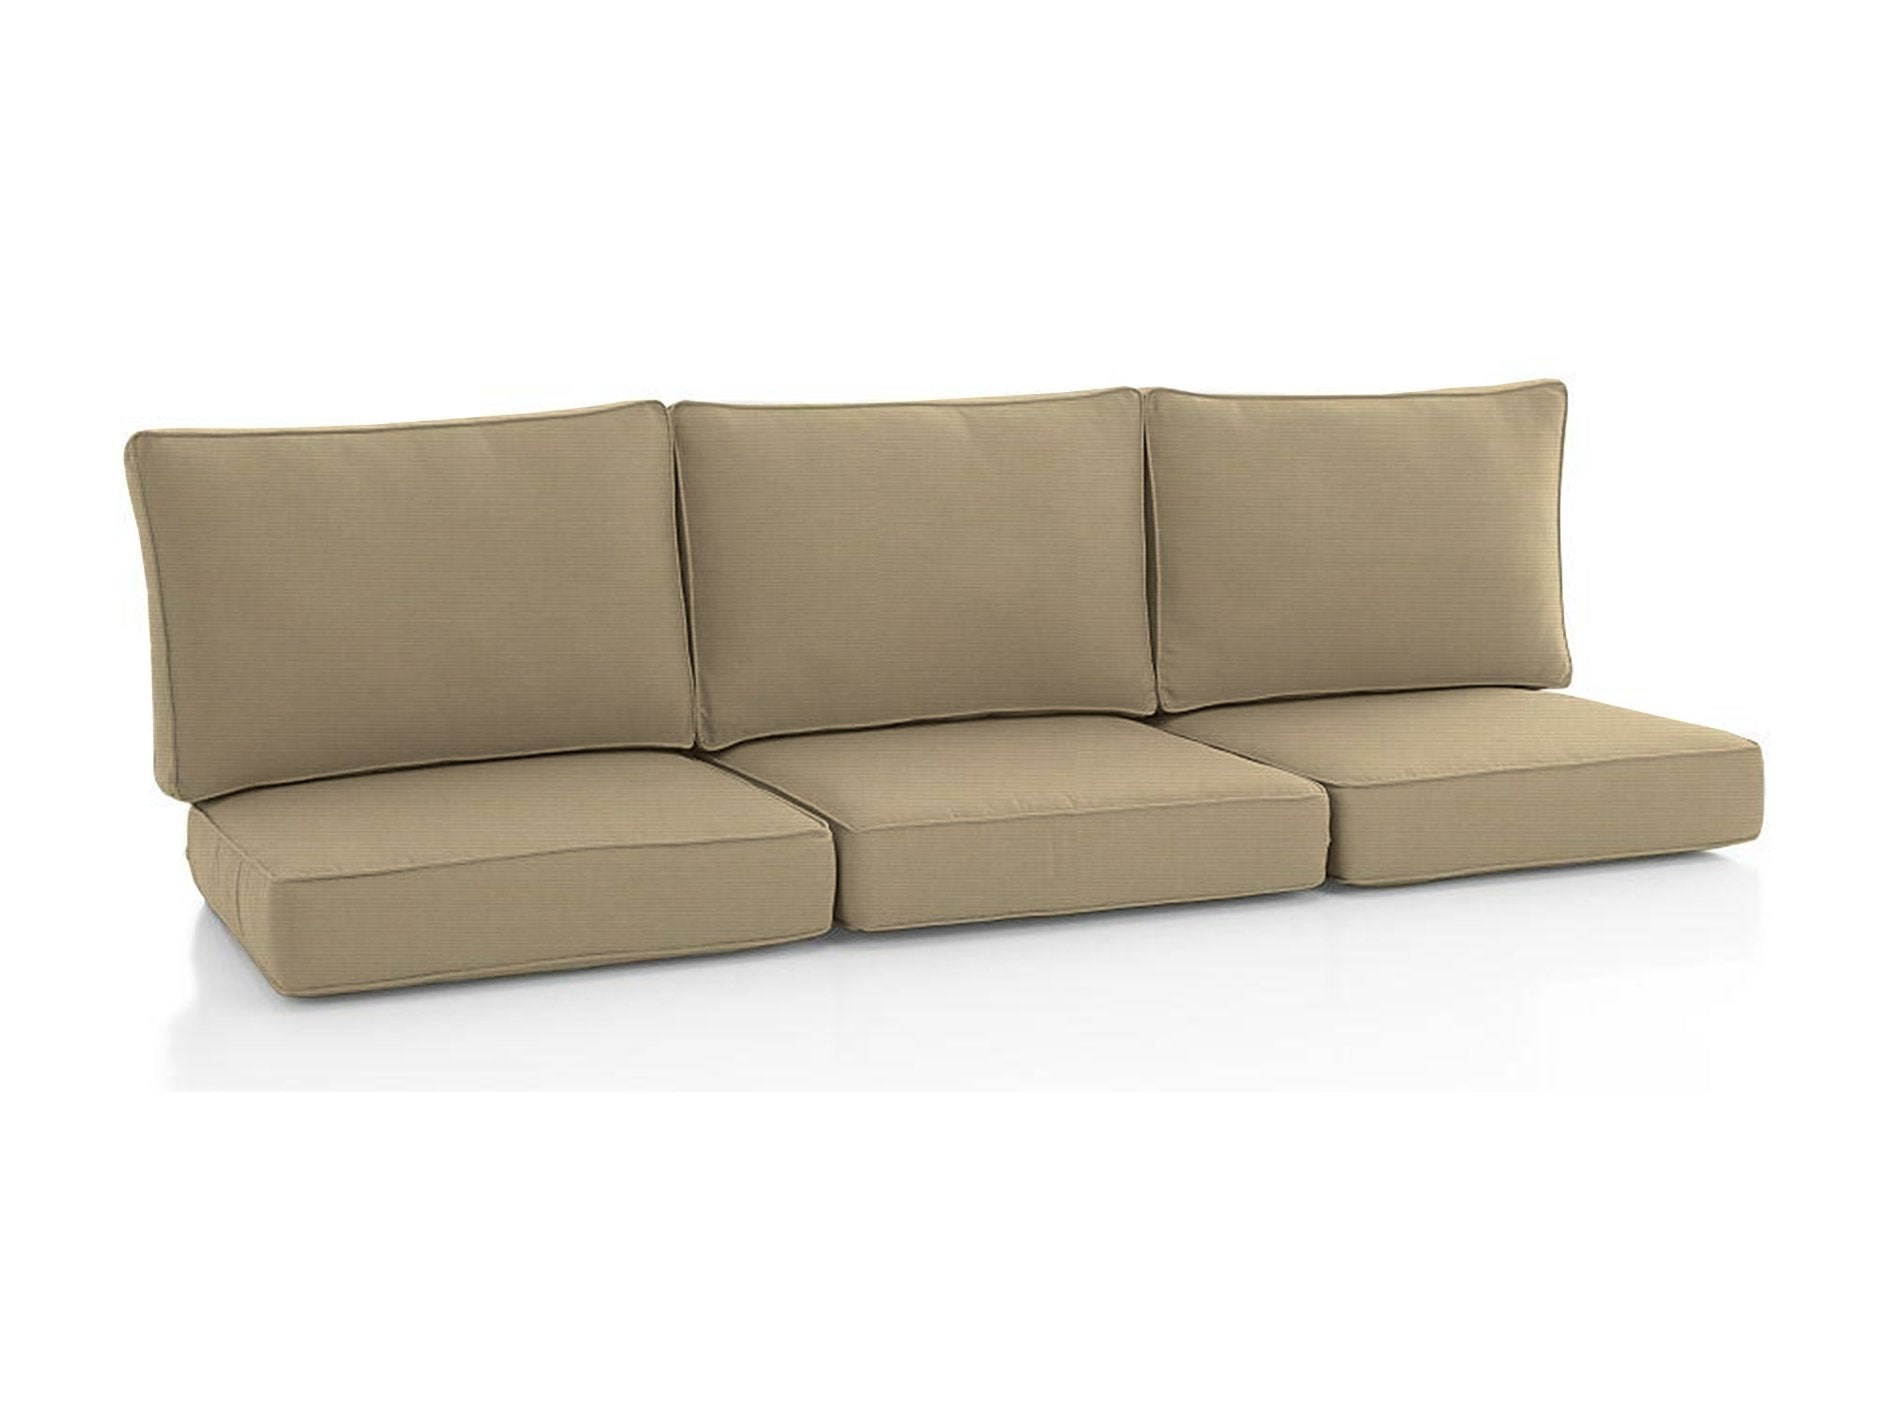 Sunbrella Outdoor Sofa Custom Cushions - Foam Sales